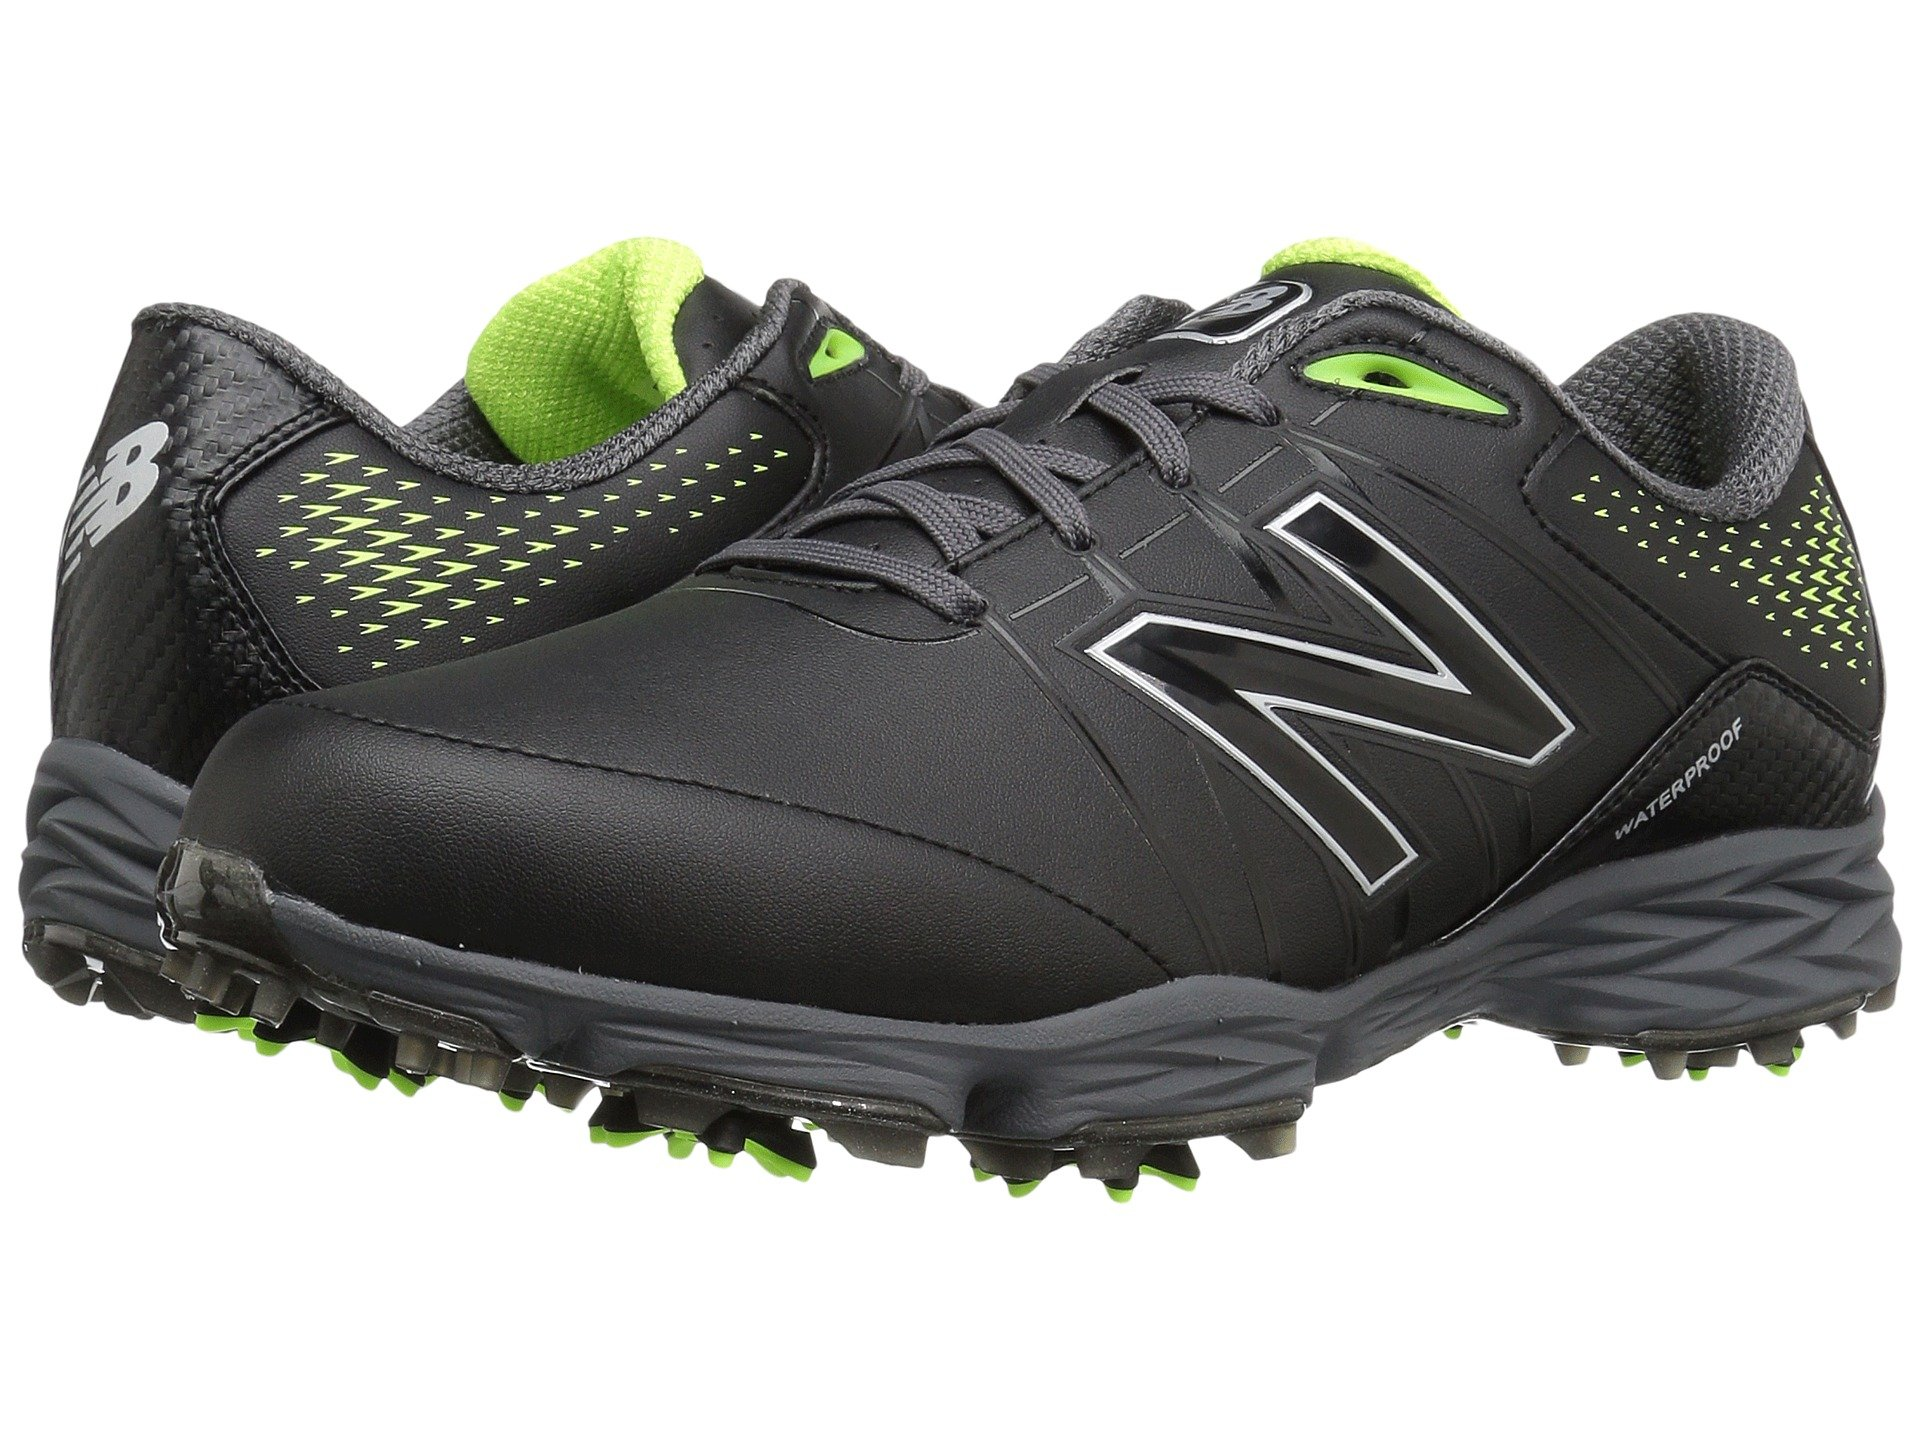 NBG2004 New Balance Golf Shoes Shipped